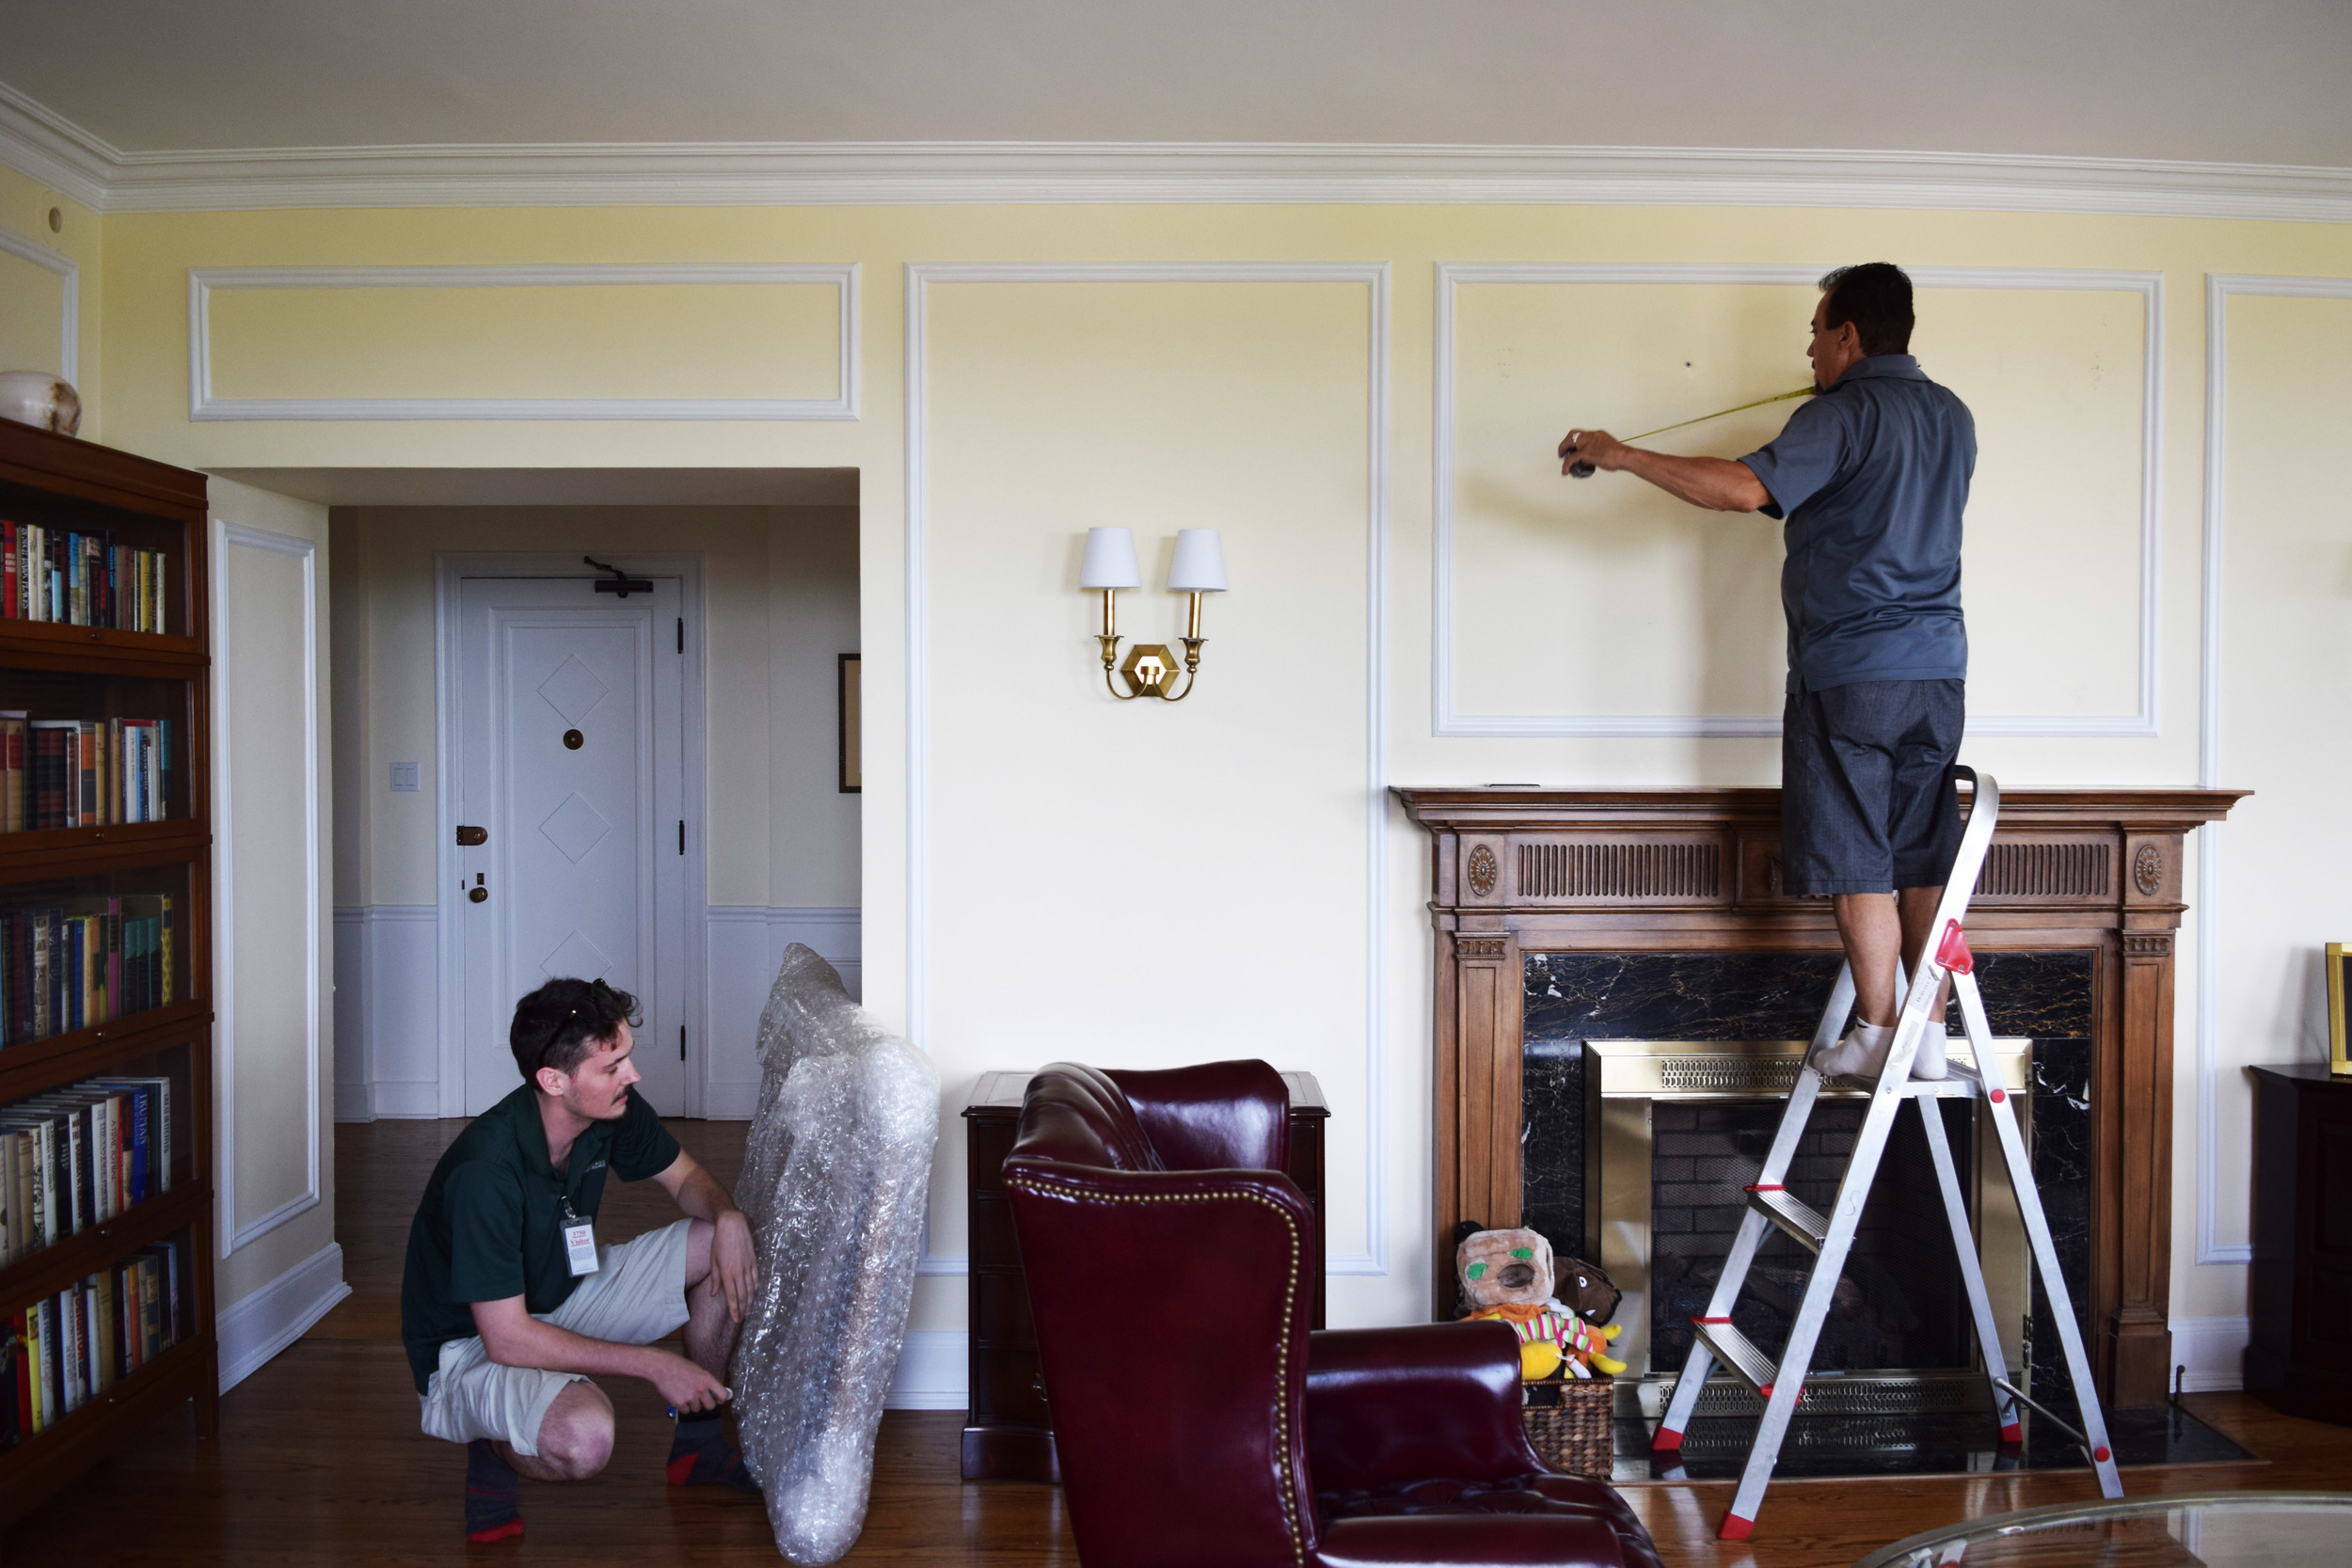 OUR INSTALLERS MEASURE AND PREP THE WALL FOR THE MIRROR. MEASURE TWICE, HAMMER ONCE!